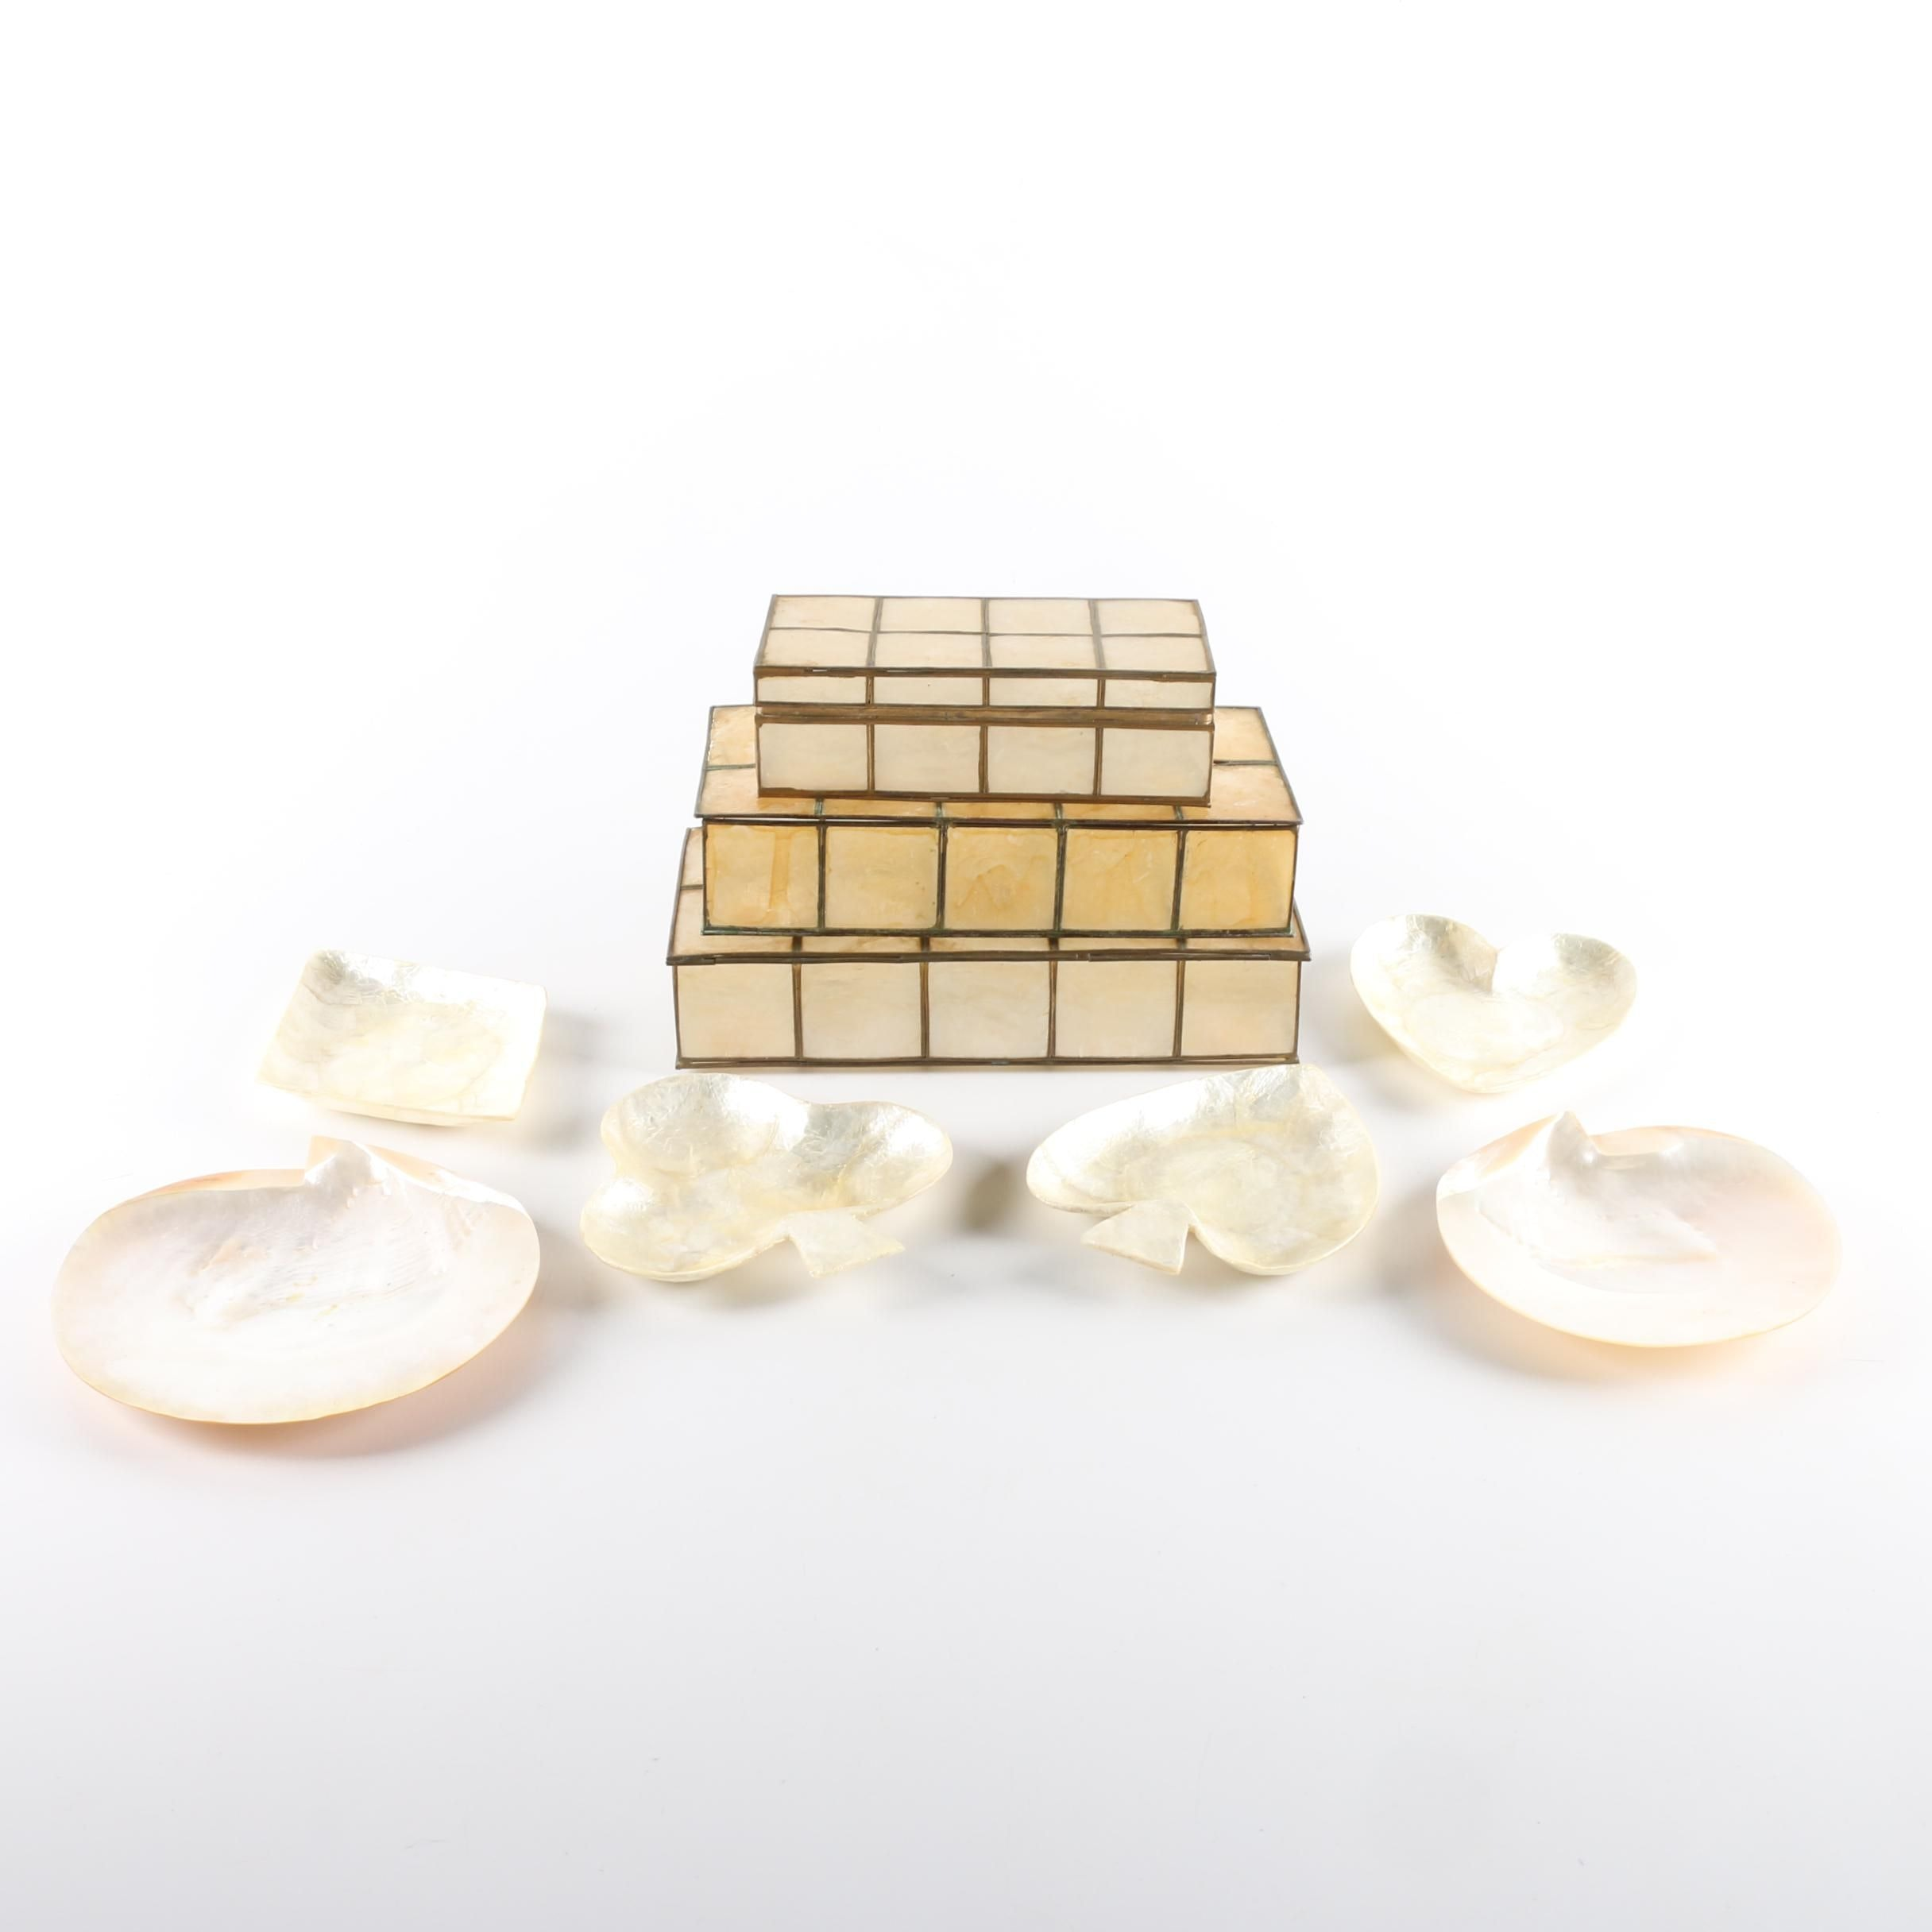 Shell Trays and Boxes